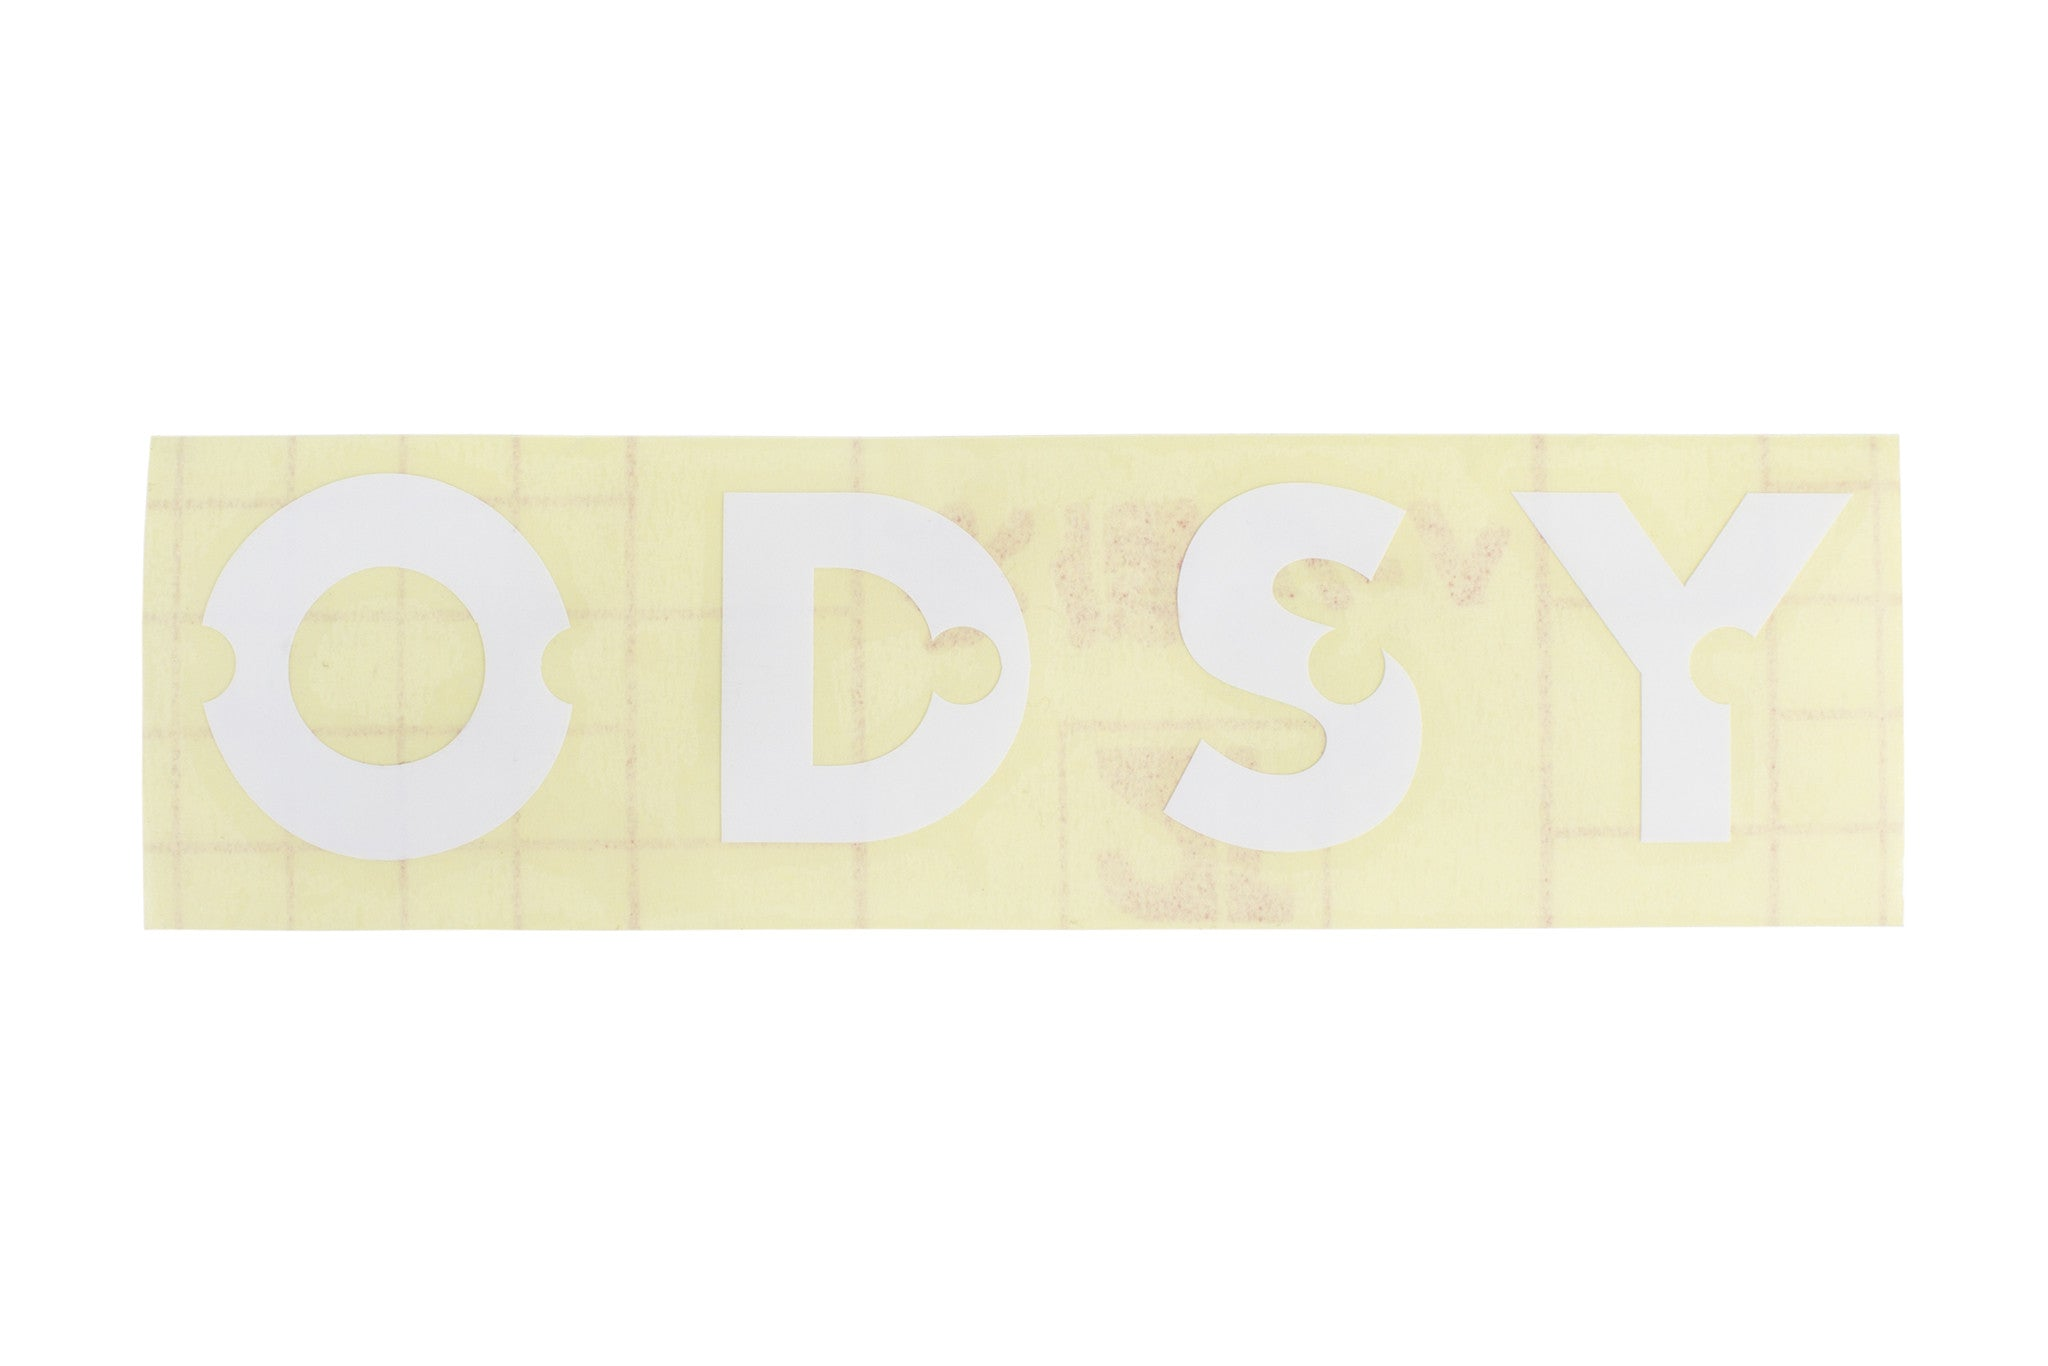 Odyssey Rim Sticker (Die-Cut) - White